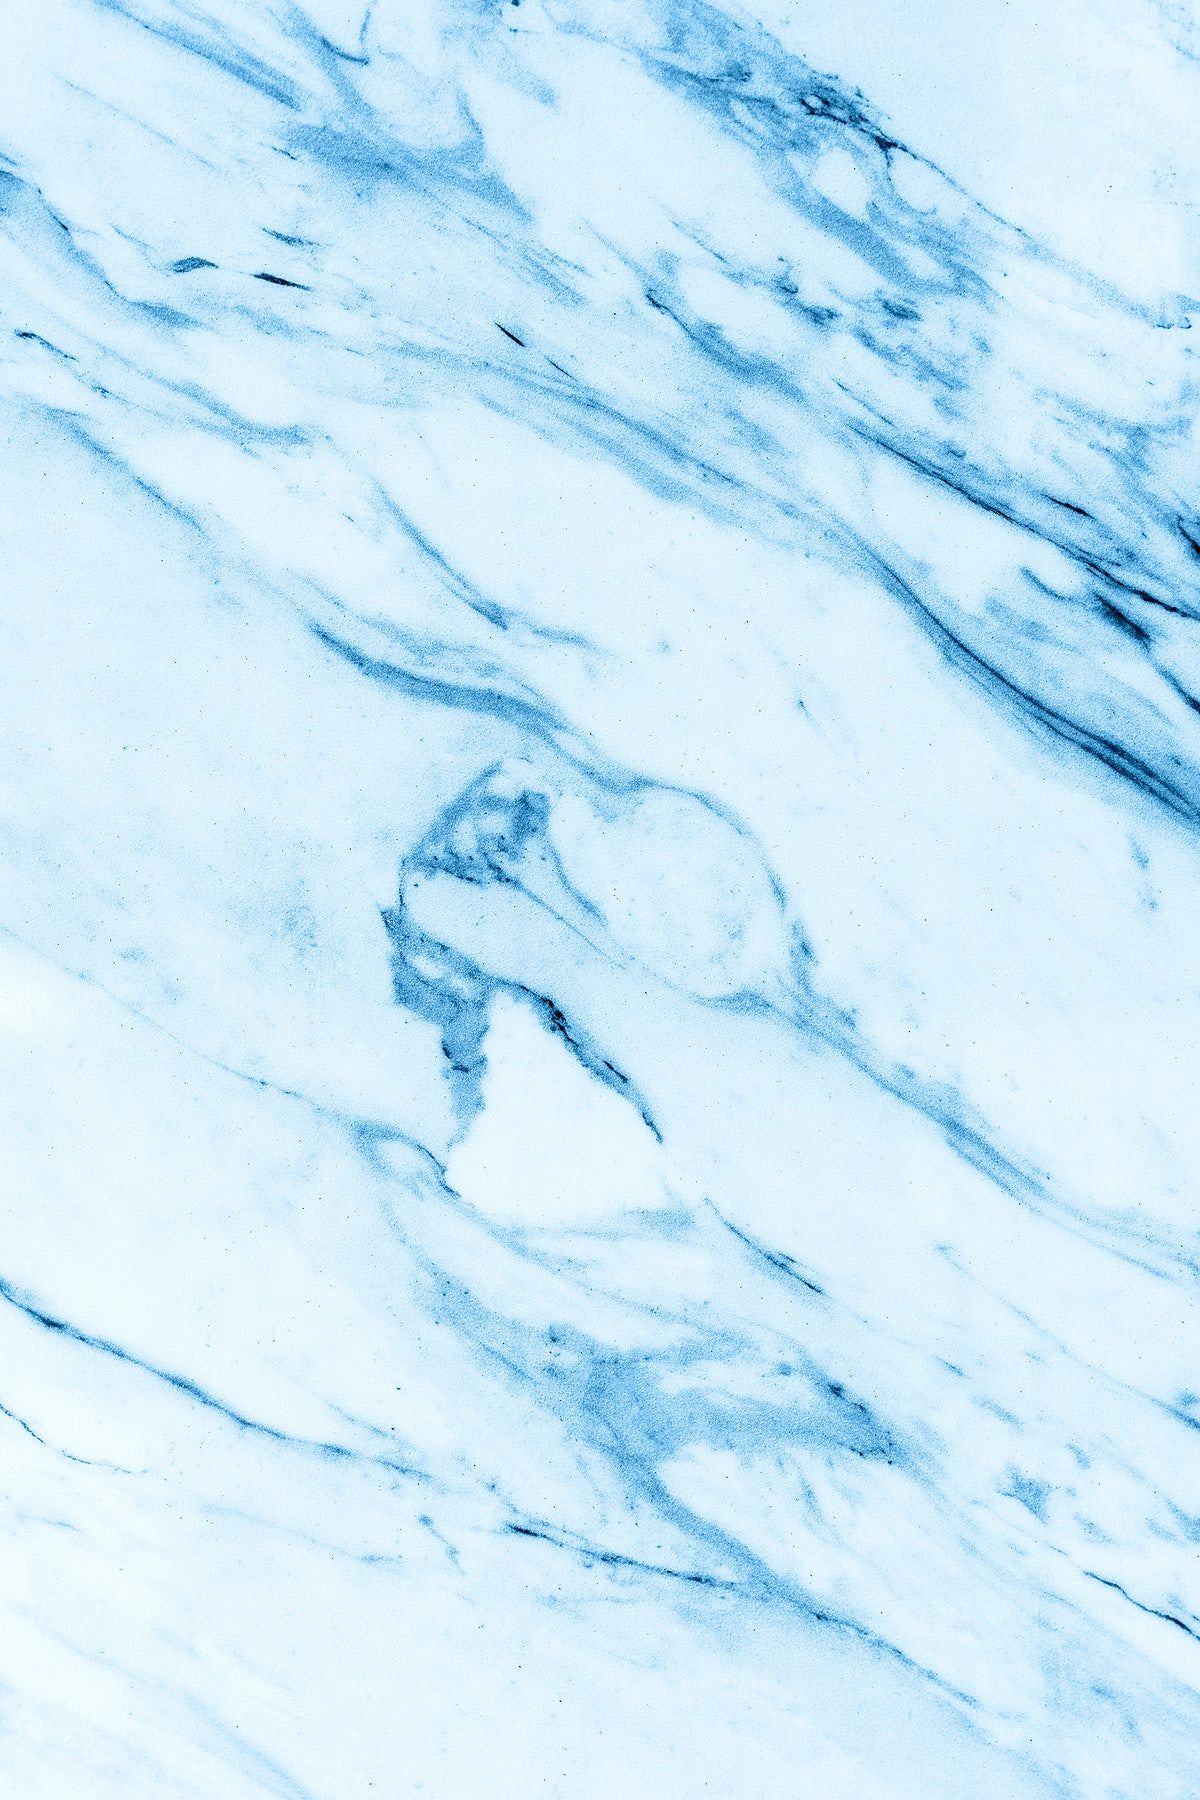 Blue Marble Texture Background Image Free Image By Rawpixel Com Blue Texture Background Blue Background Wallpapers Marble Background Iphone